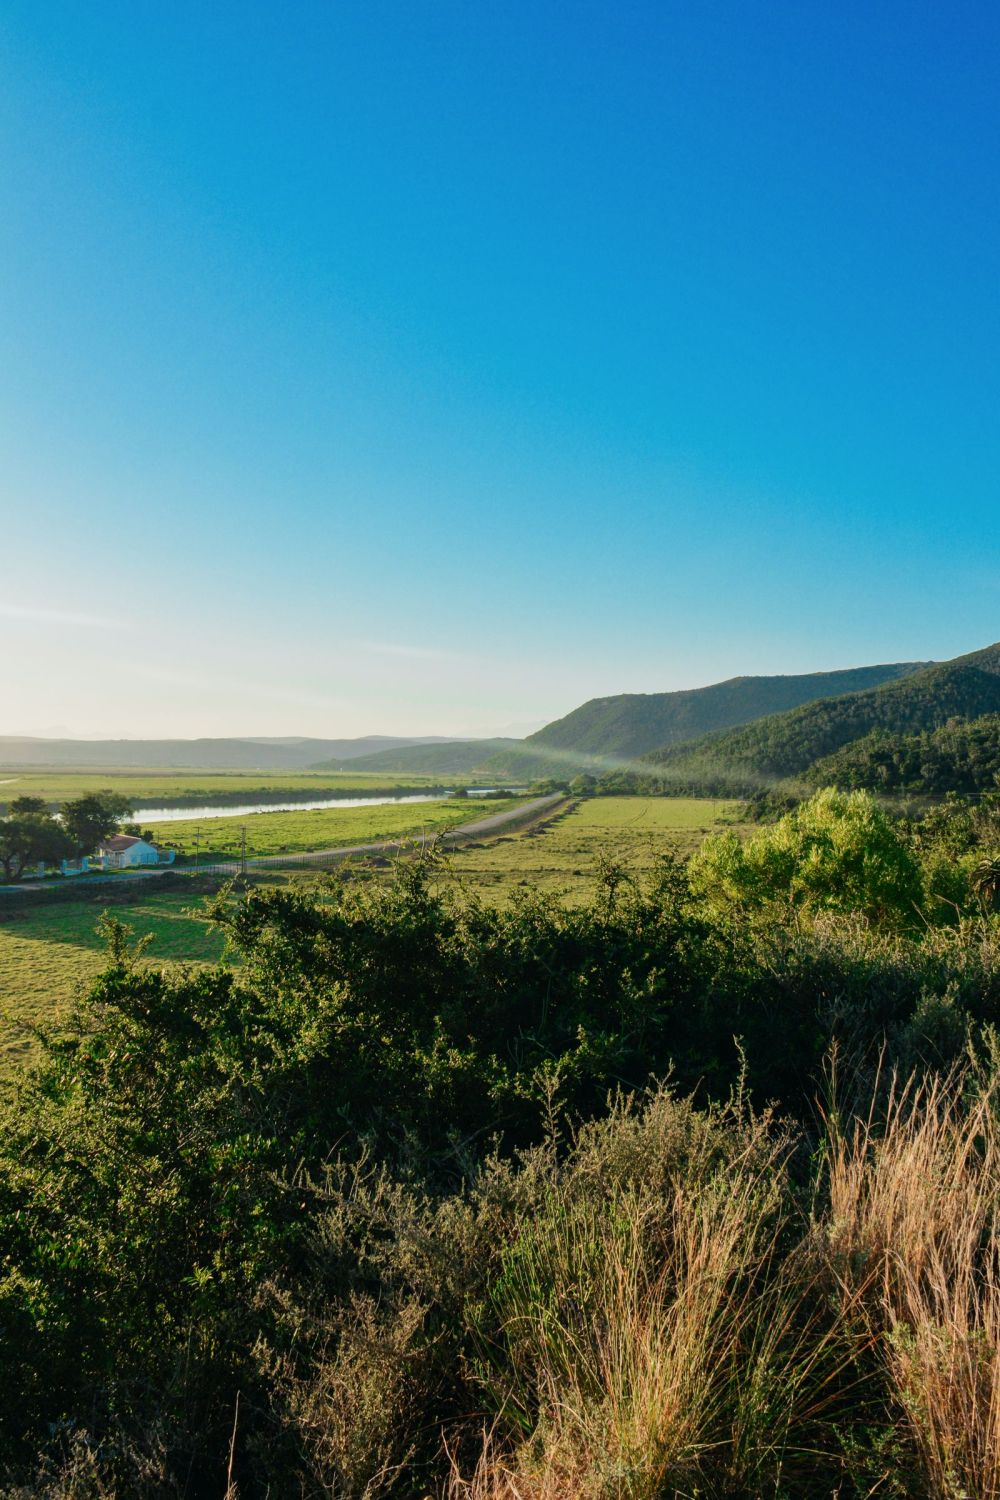 Eastern Cape Adventures In South Africa: Wines, 1,000 Year Old Trees And The Tallest Bungee In The World! (16)